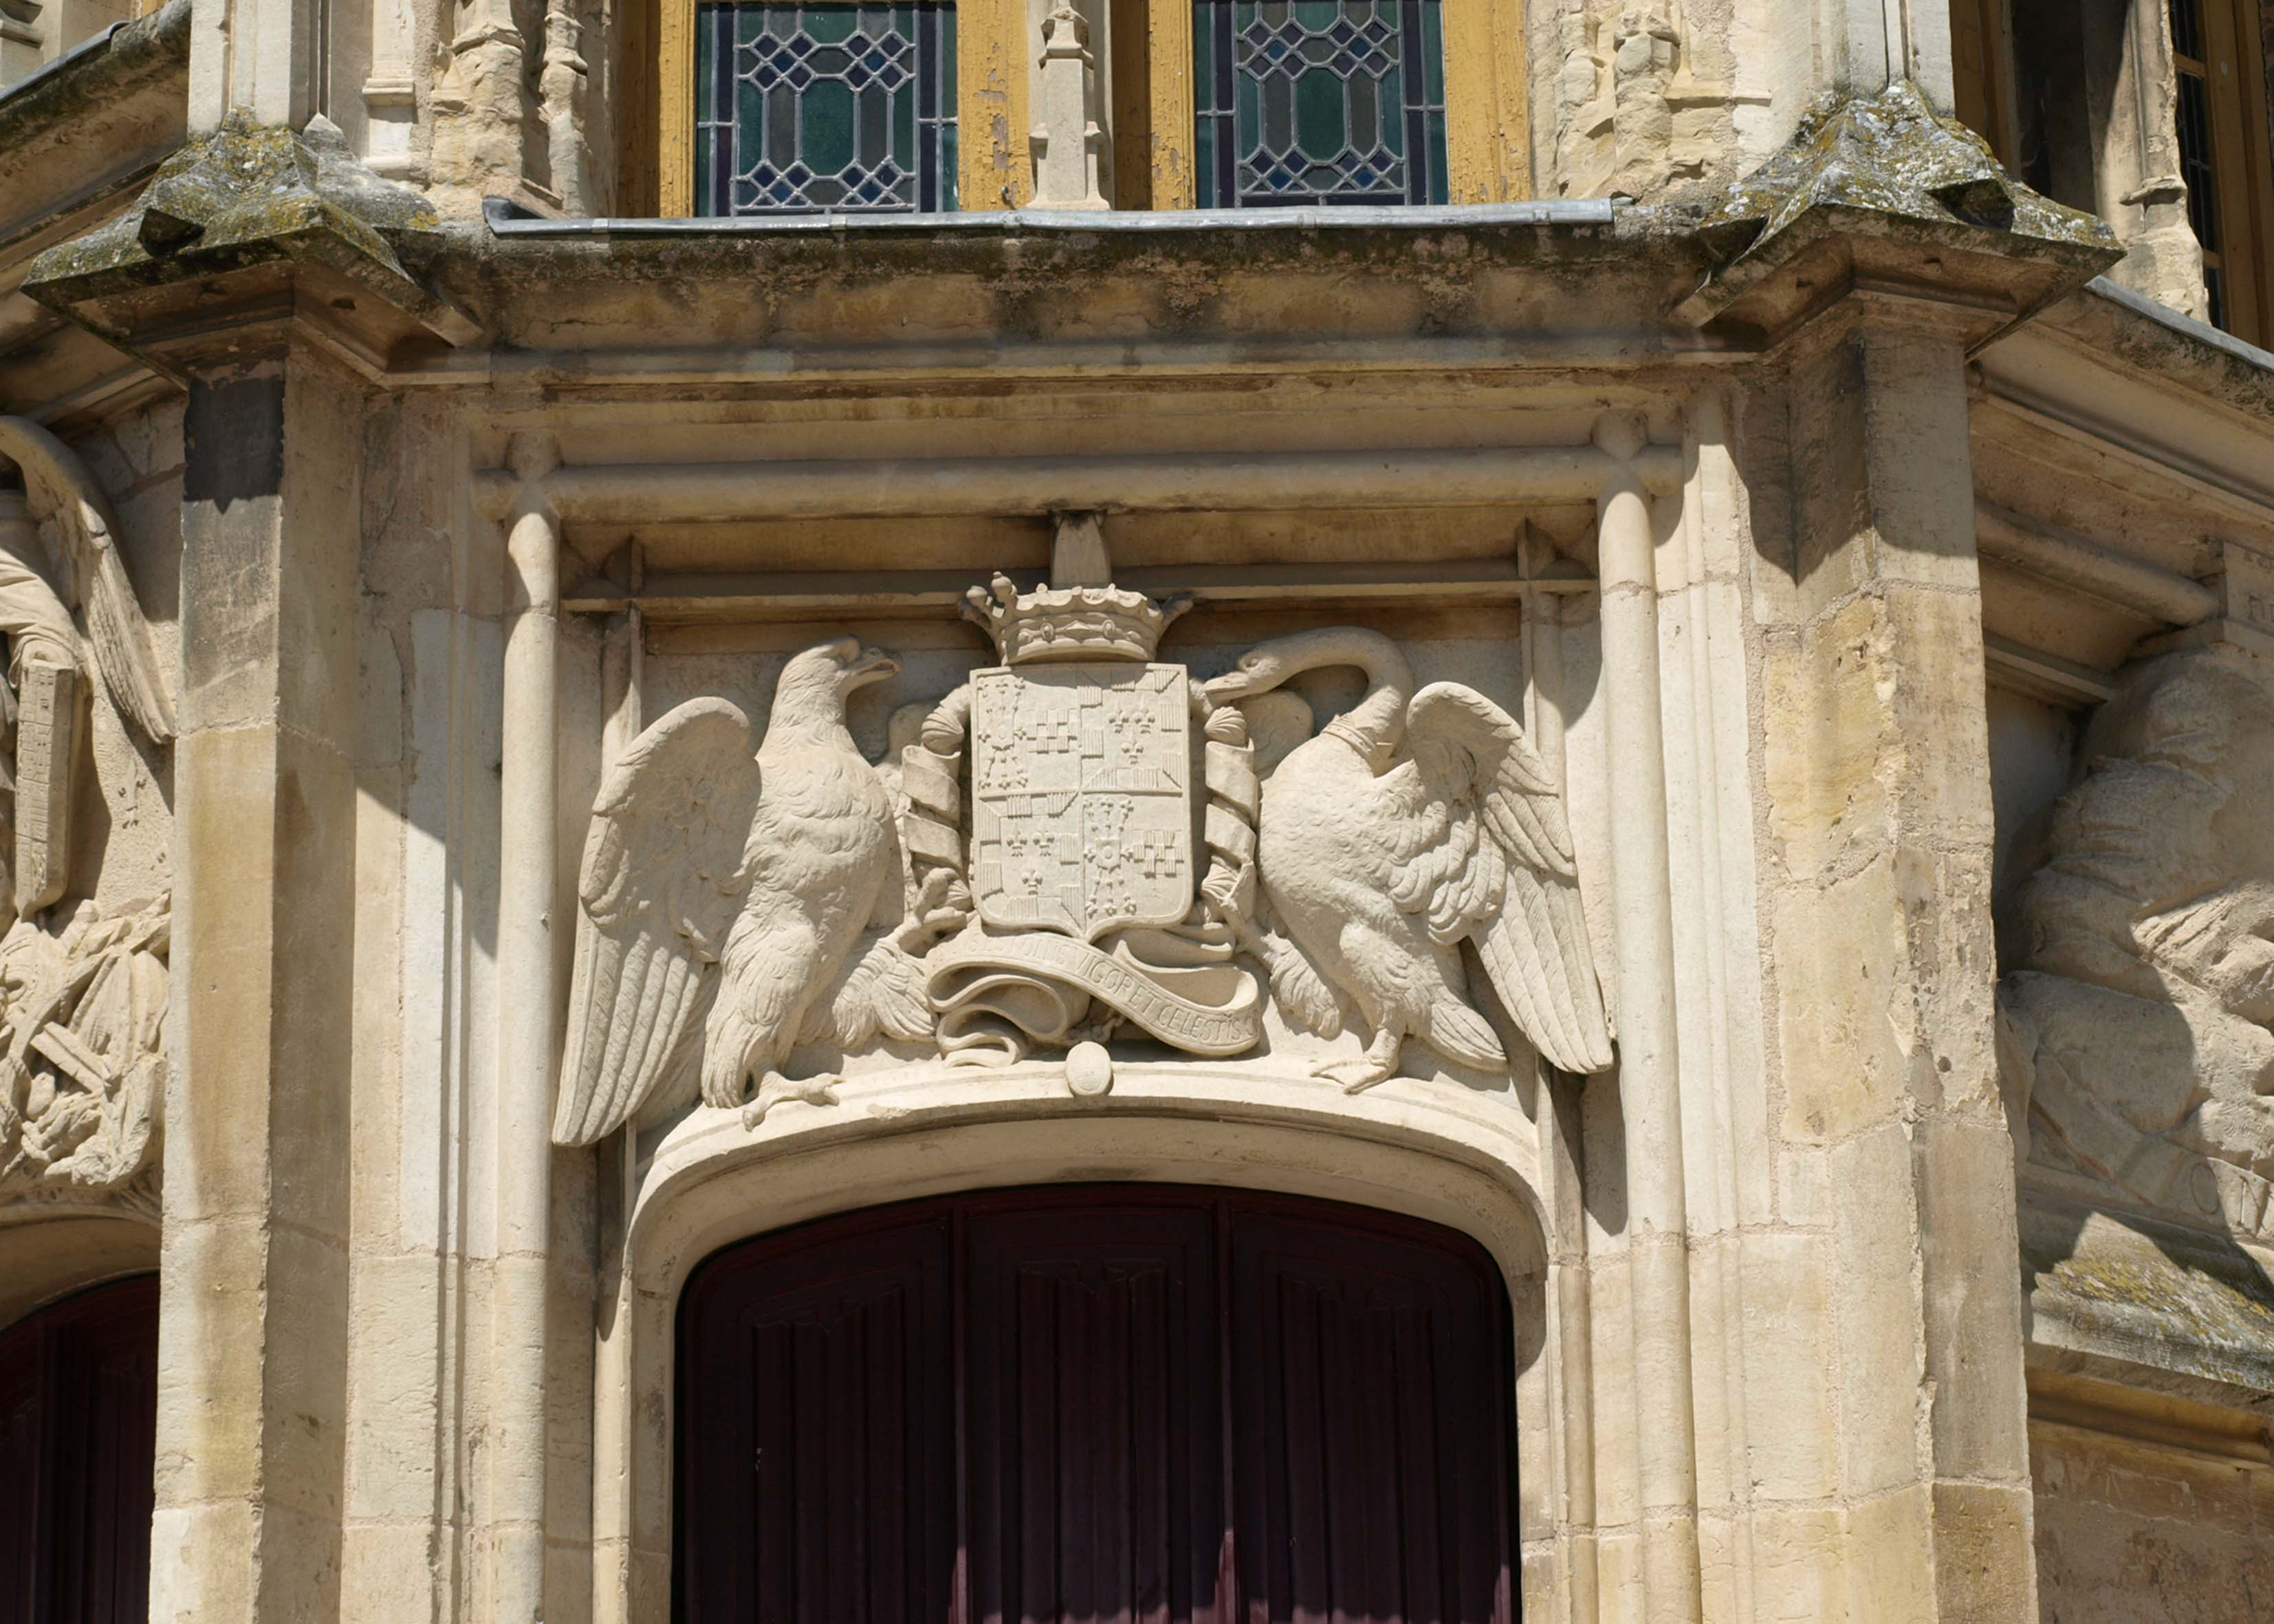 Palais ducal à Nevers